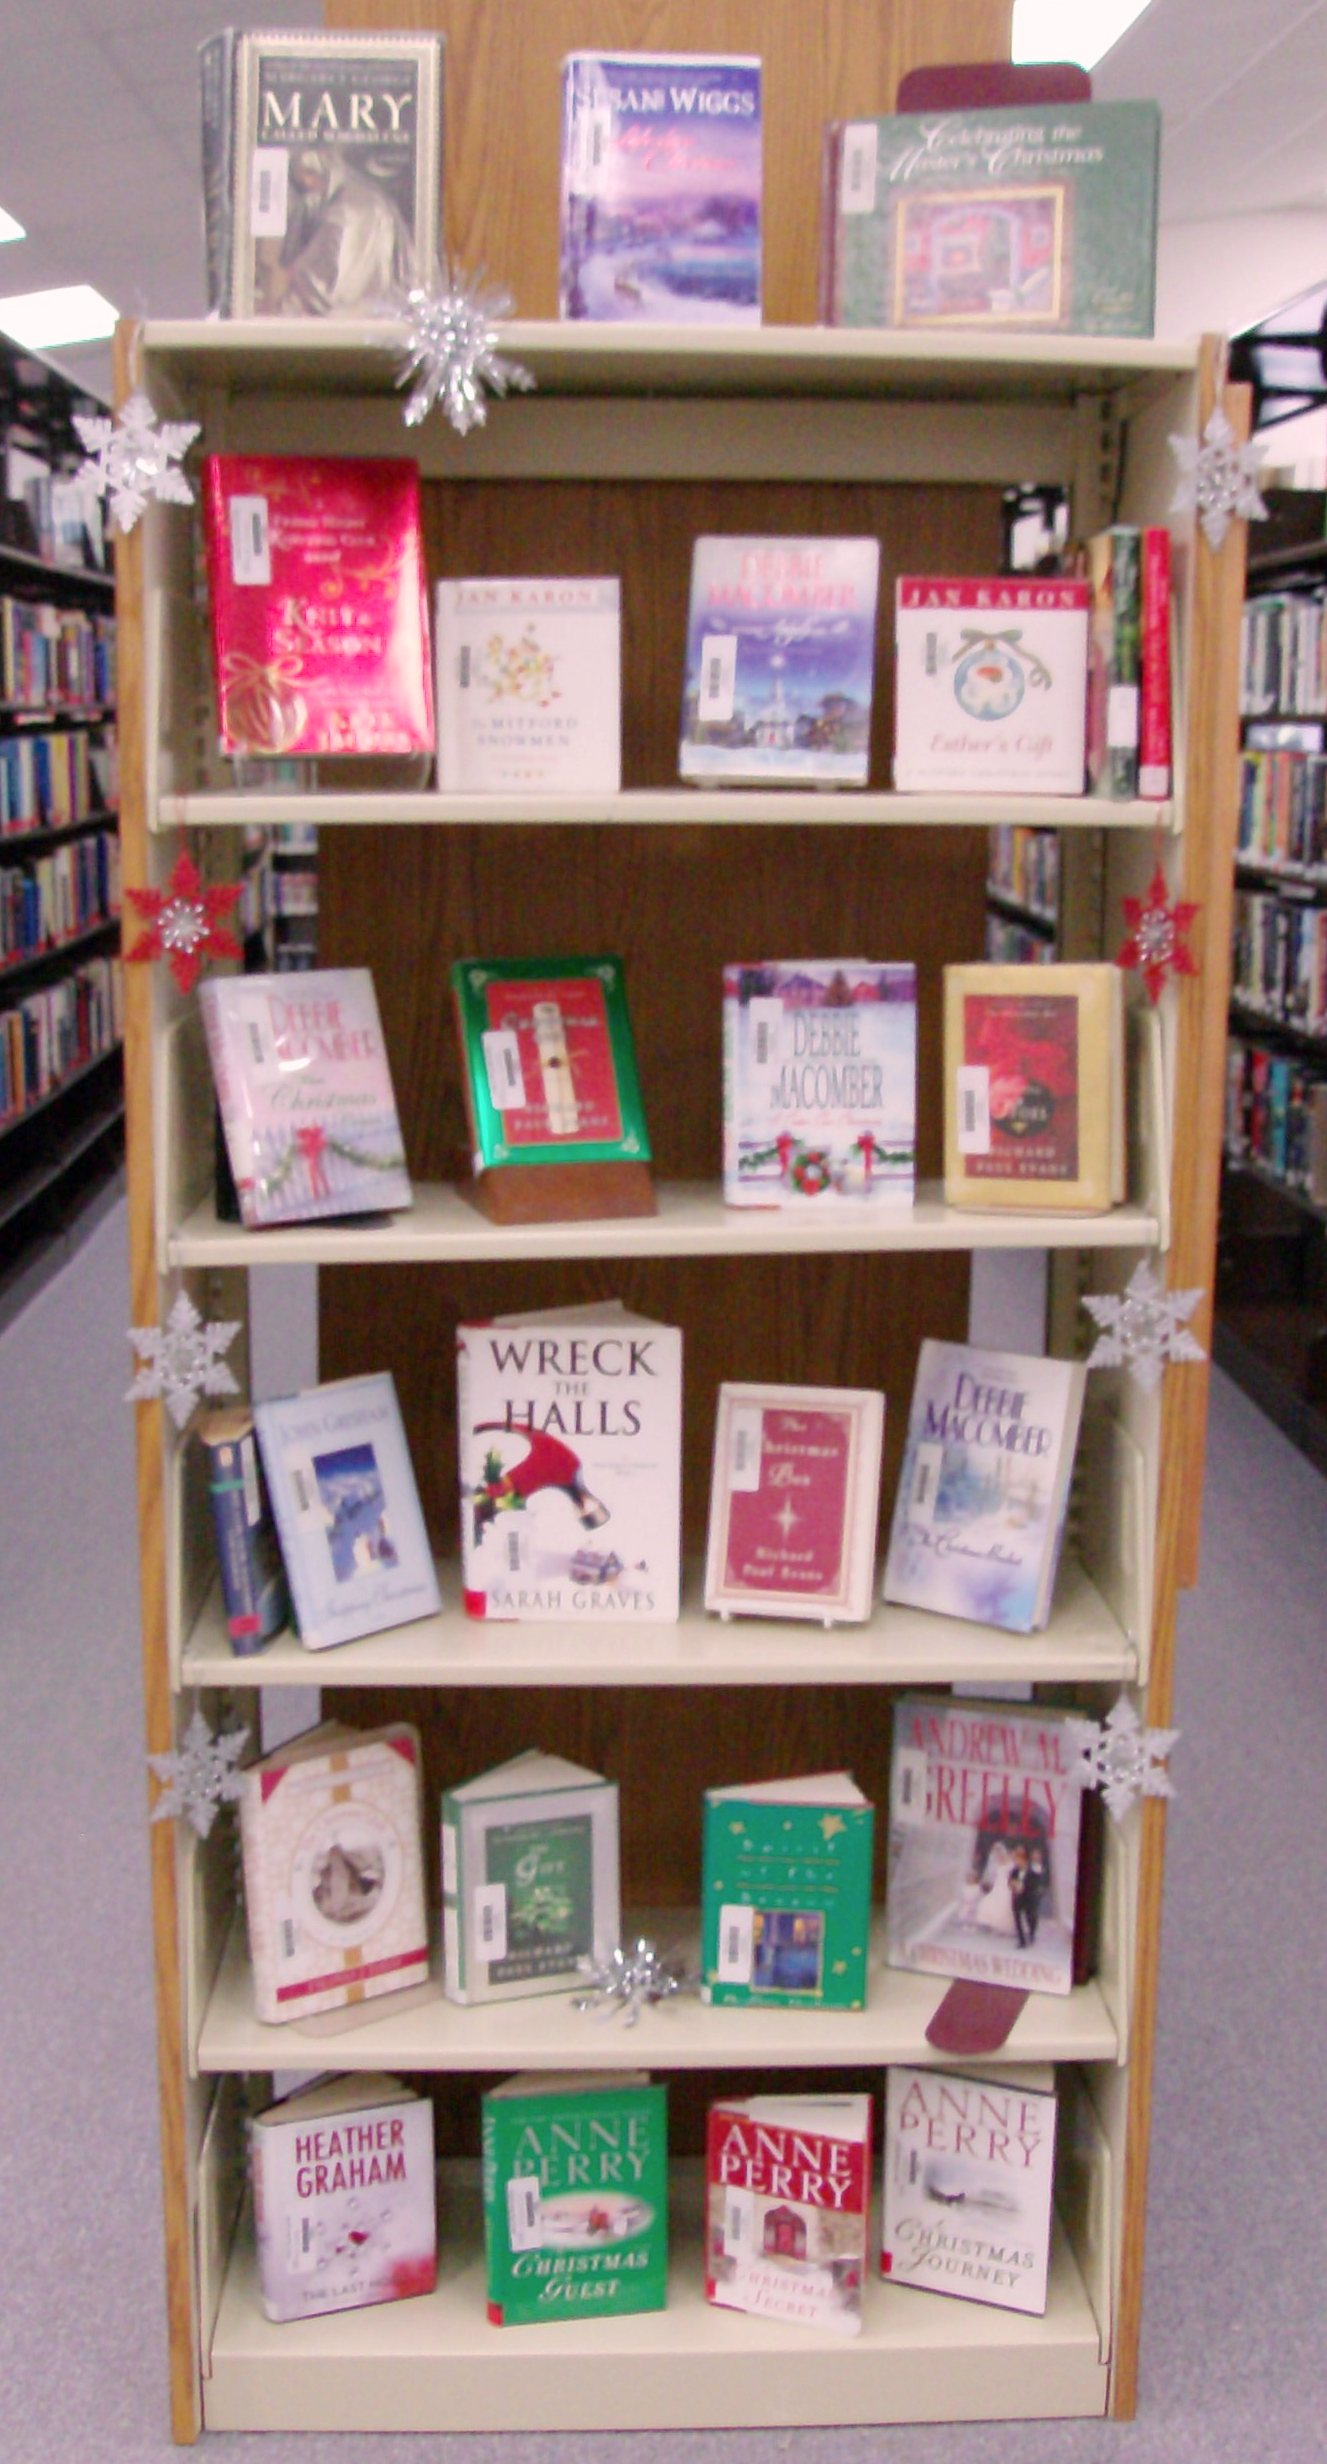 Bookcase display 12-9-10 -2